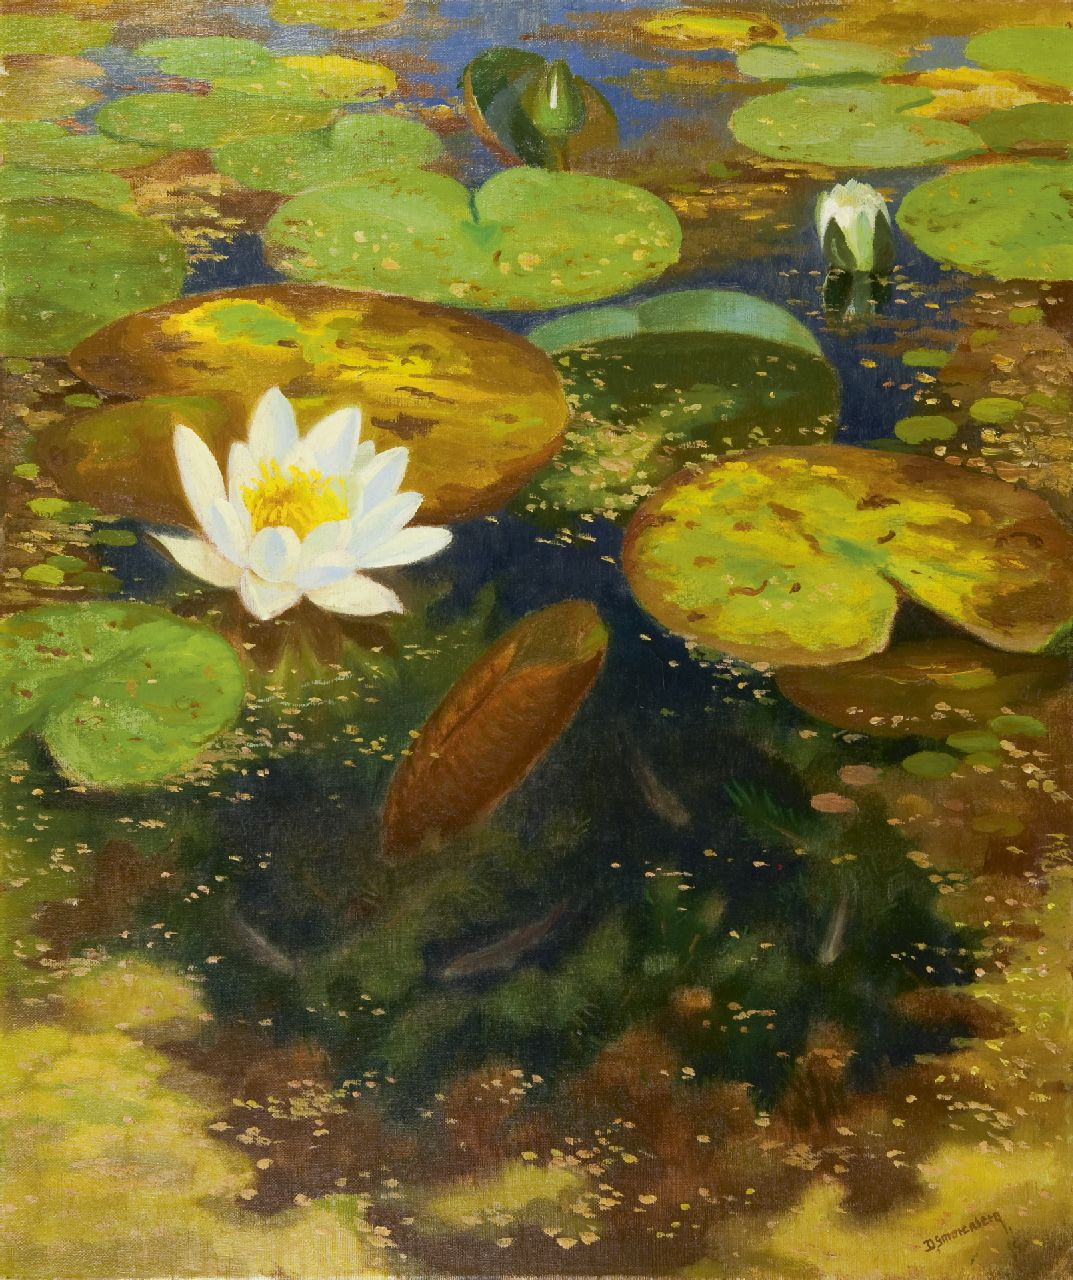 Smorenberg D.  | Dirk Smorenberg, Water lillies, oil on canvas 59.7 x 50.3 cm, signed l.r. and dated '47